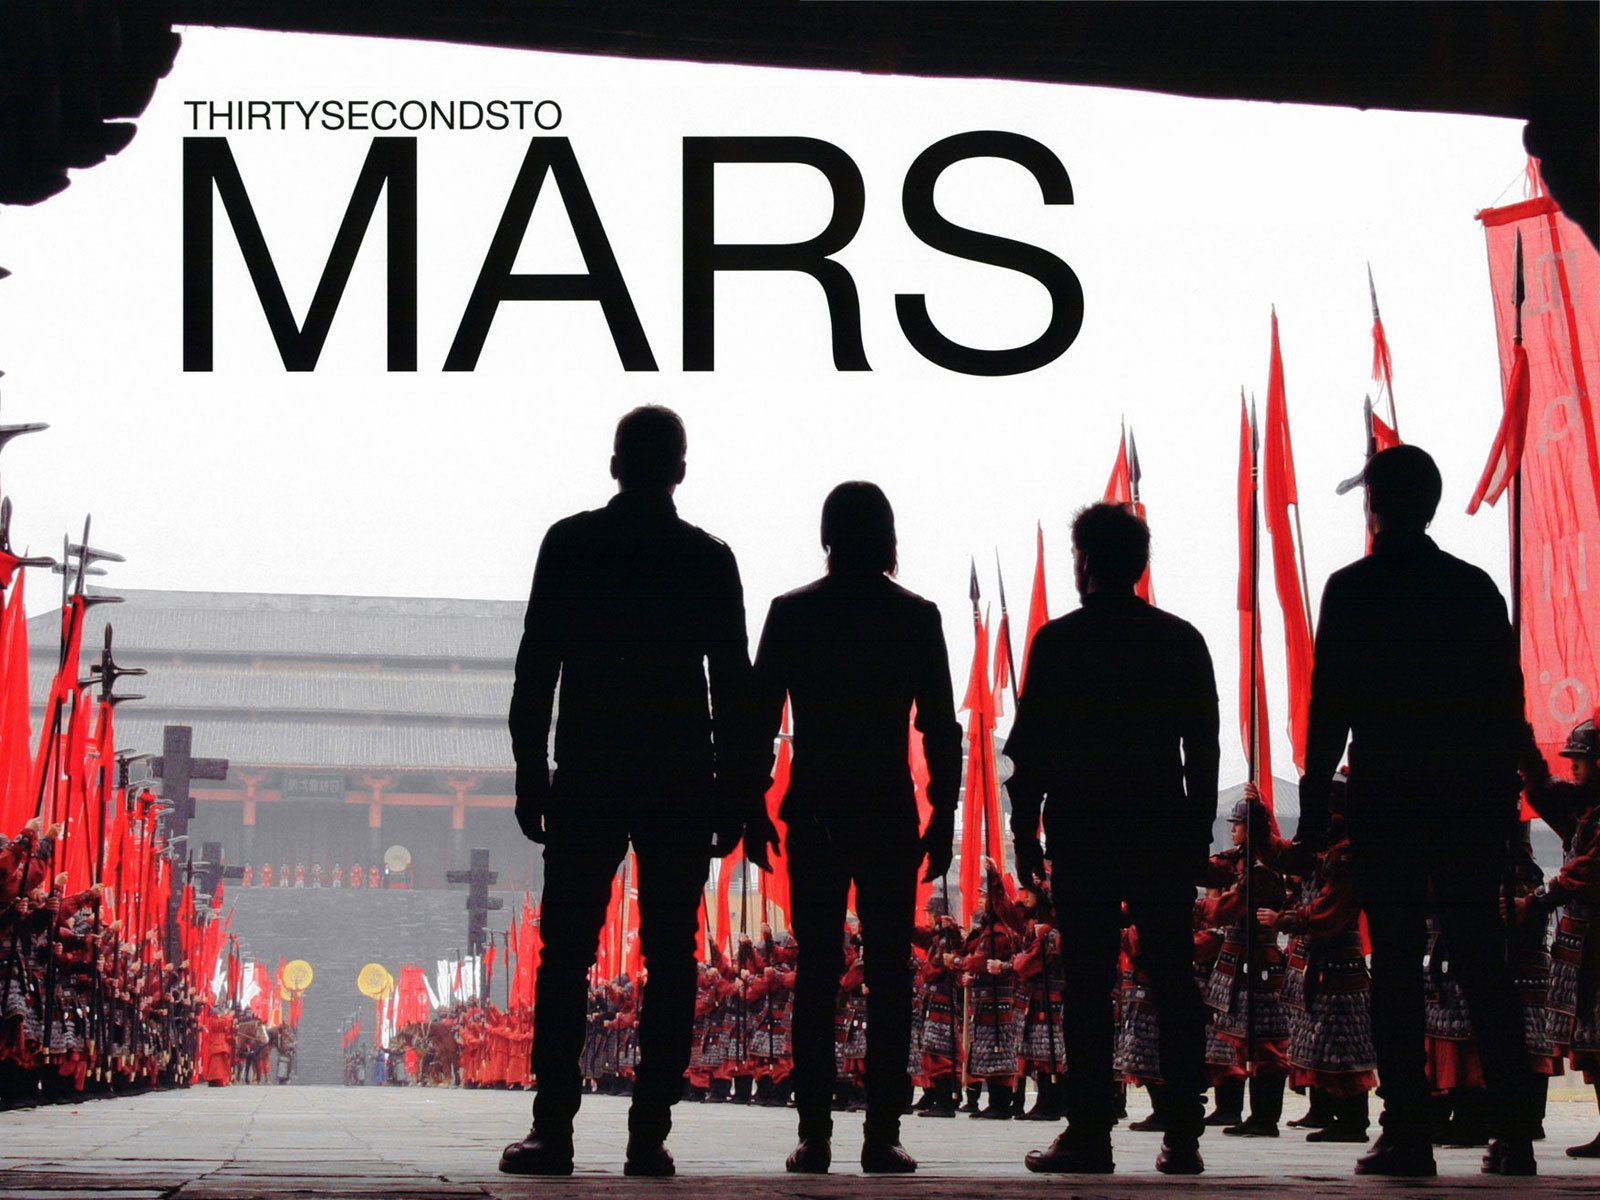 30 seconds to mars music download for free